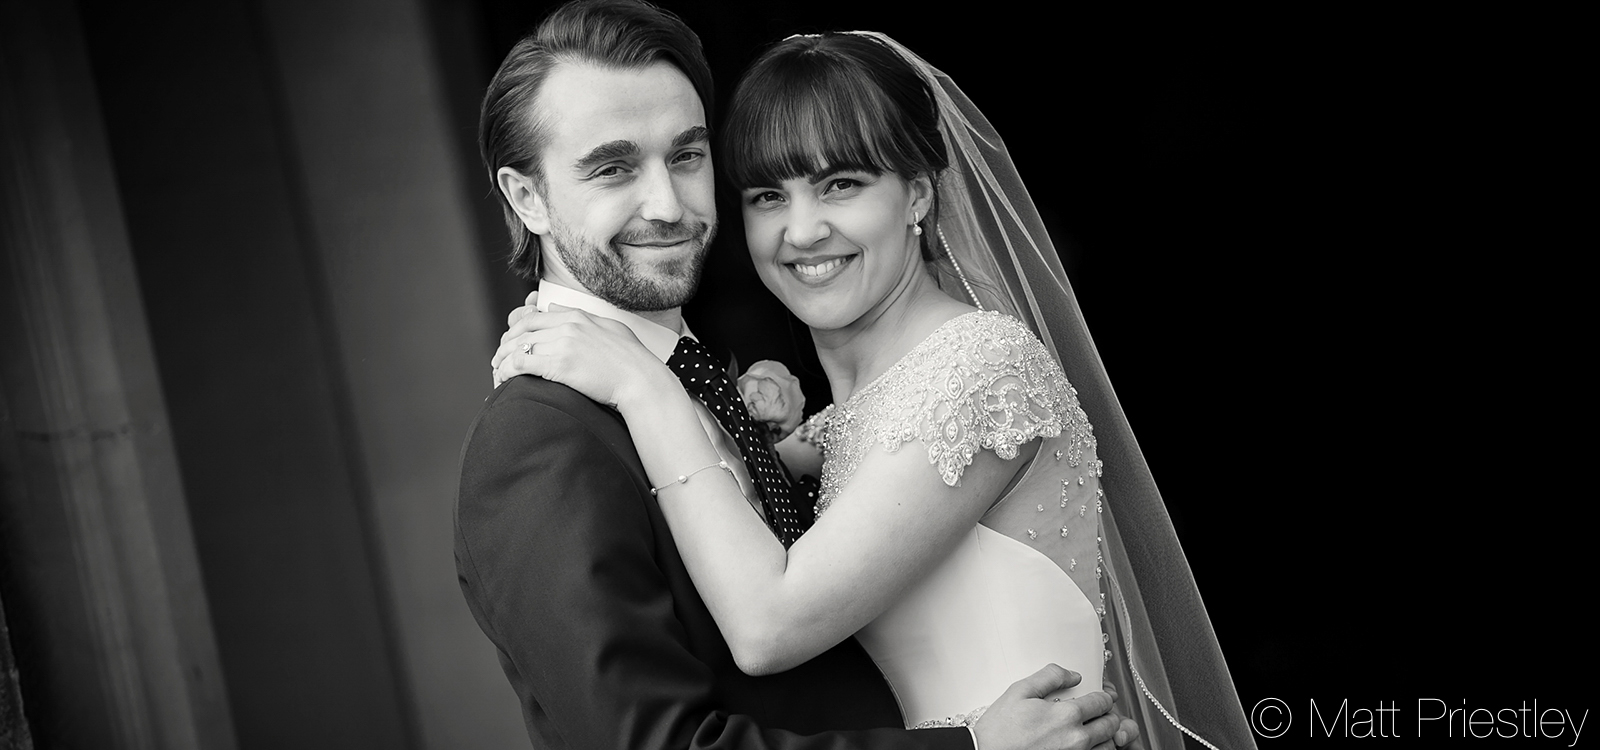 Couple-embracing-and-smiling-at-the-camera-in-the-doorway-or-Cheshire-Wedding-venue-Arley-Hall